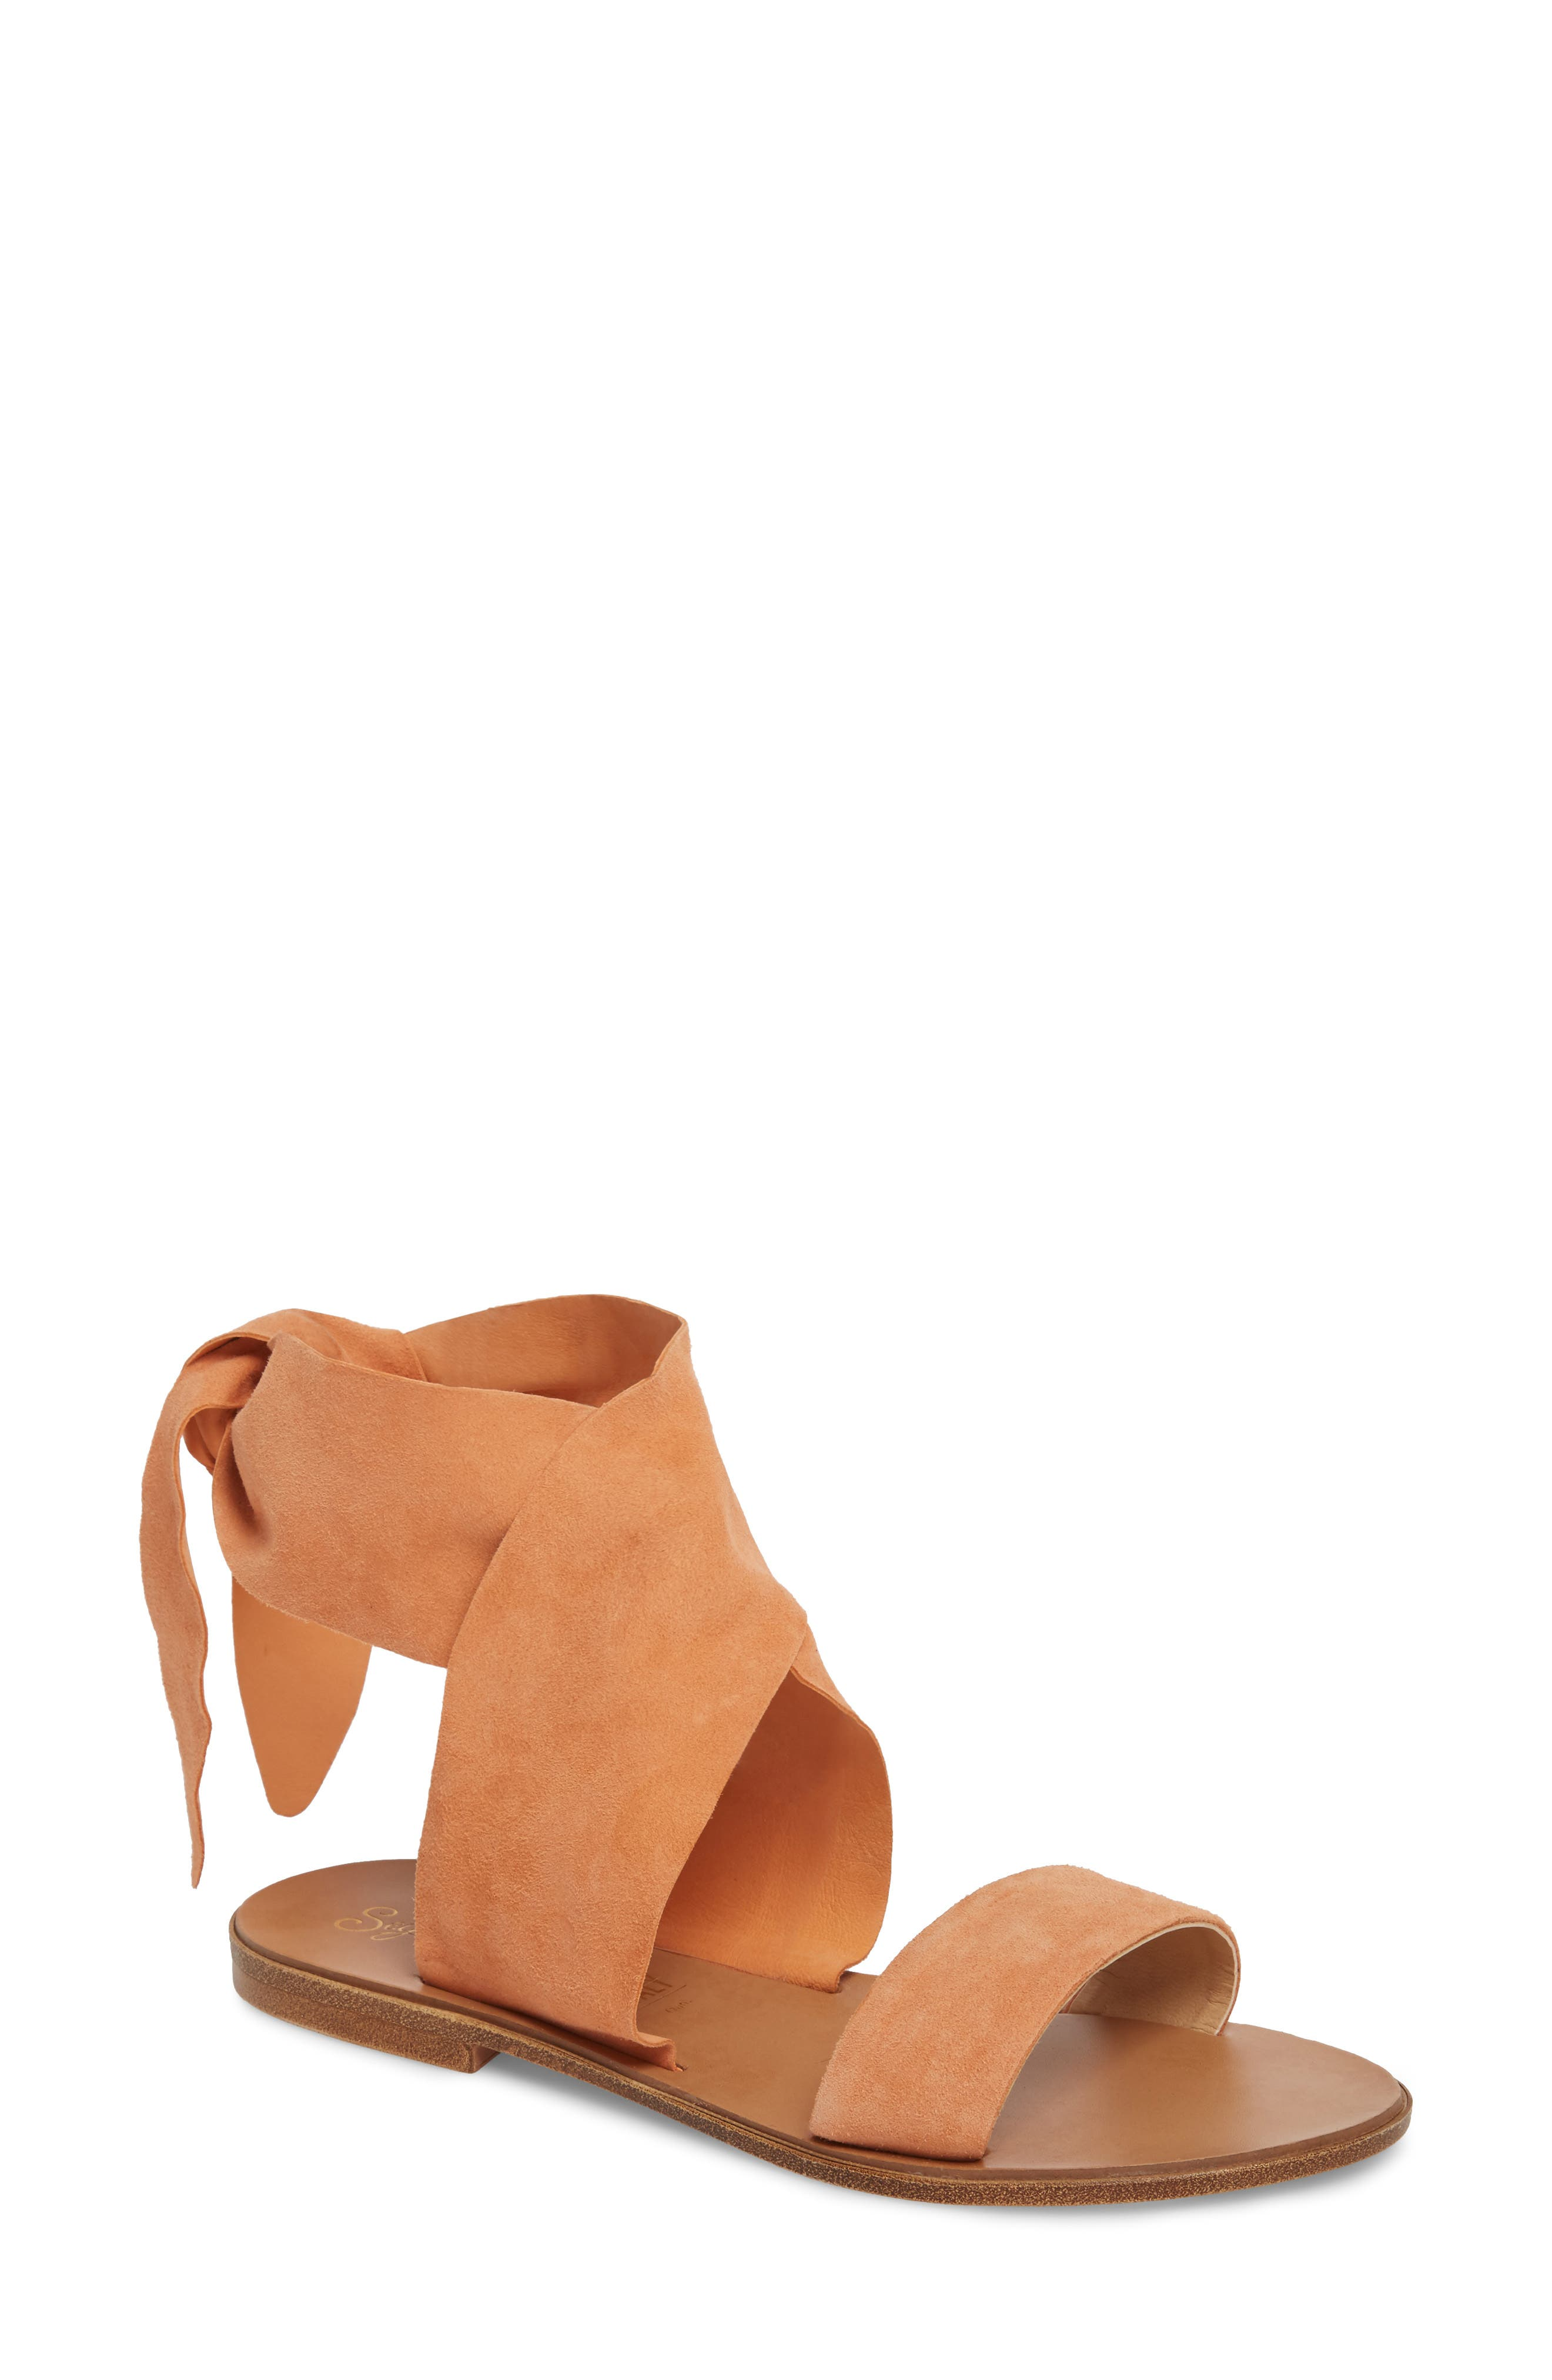 Cruisin Ankle Wrap Sandal,                             Main thumbnail 1, color,                             PEACH SUEDE